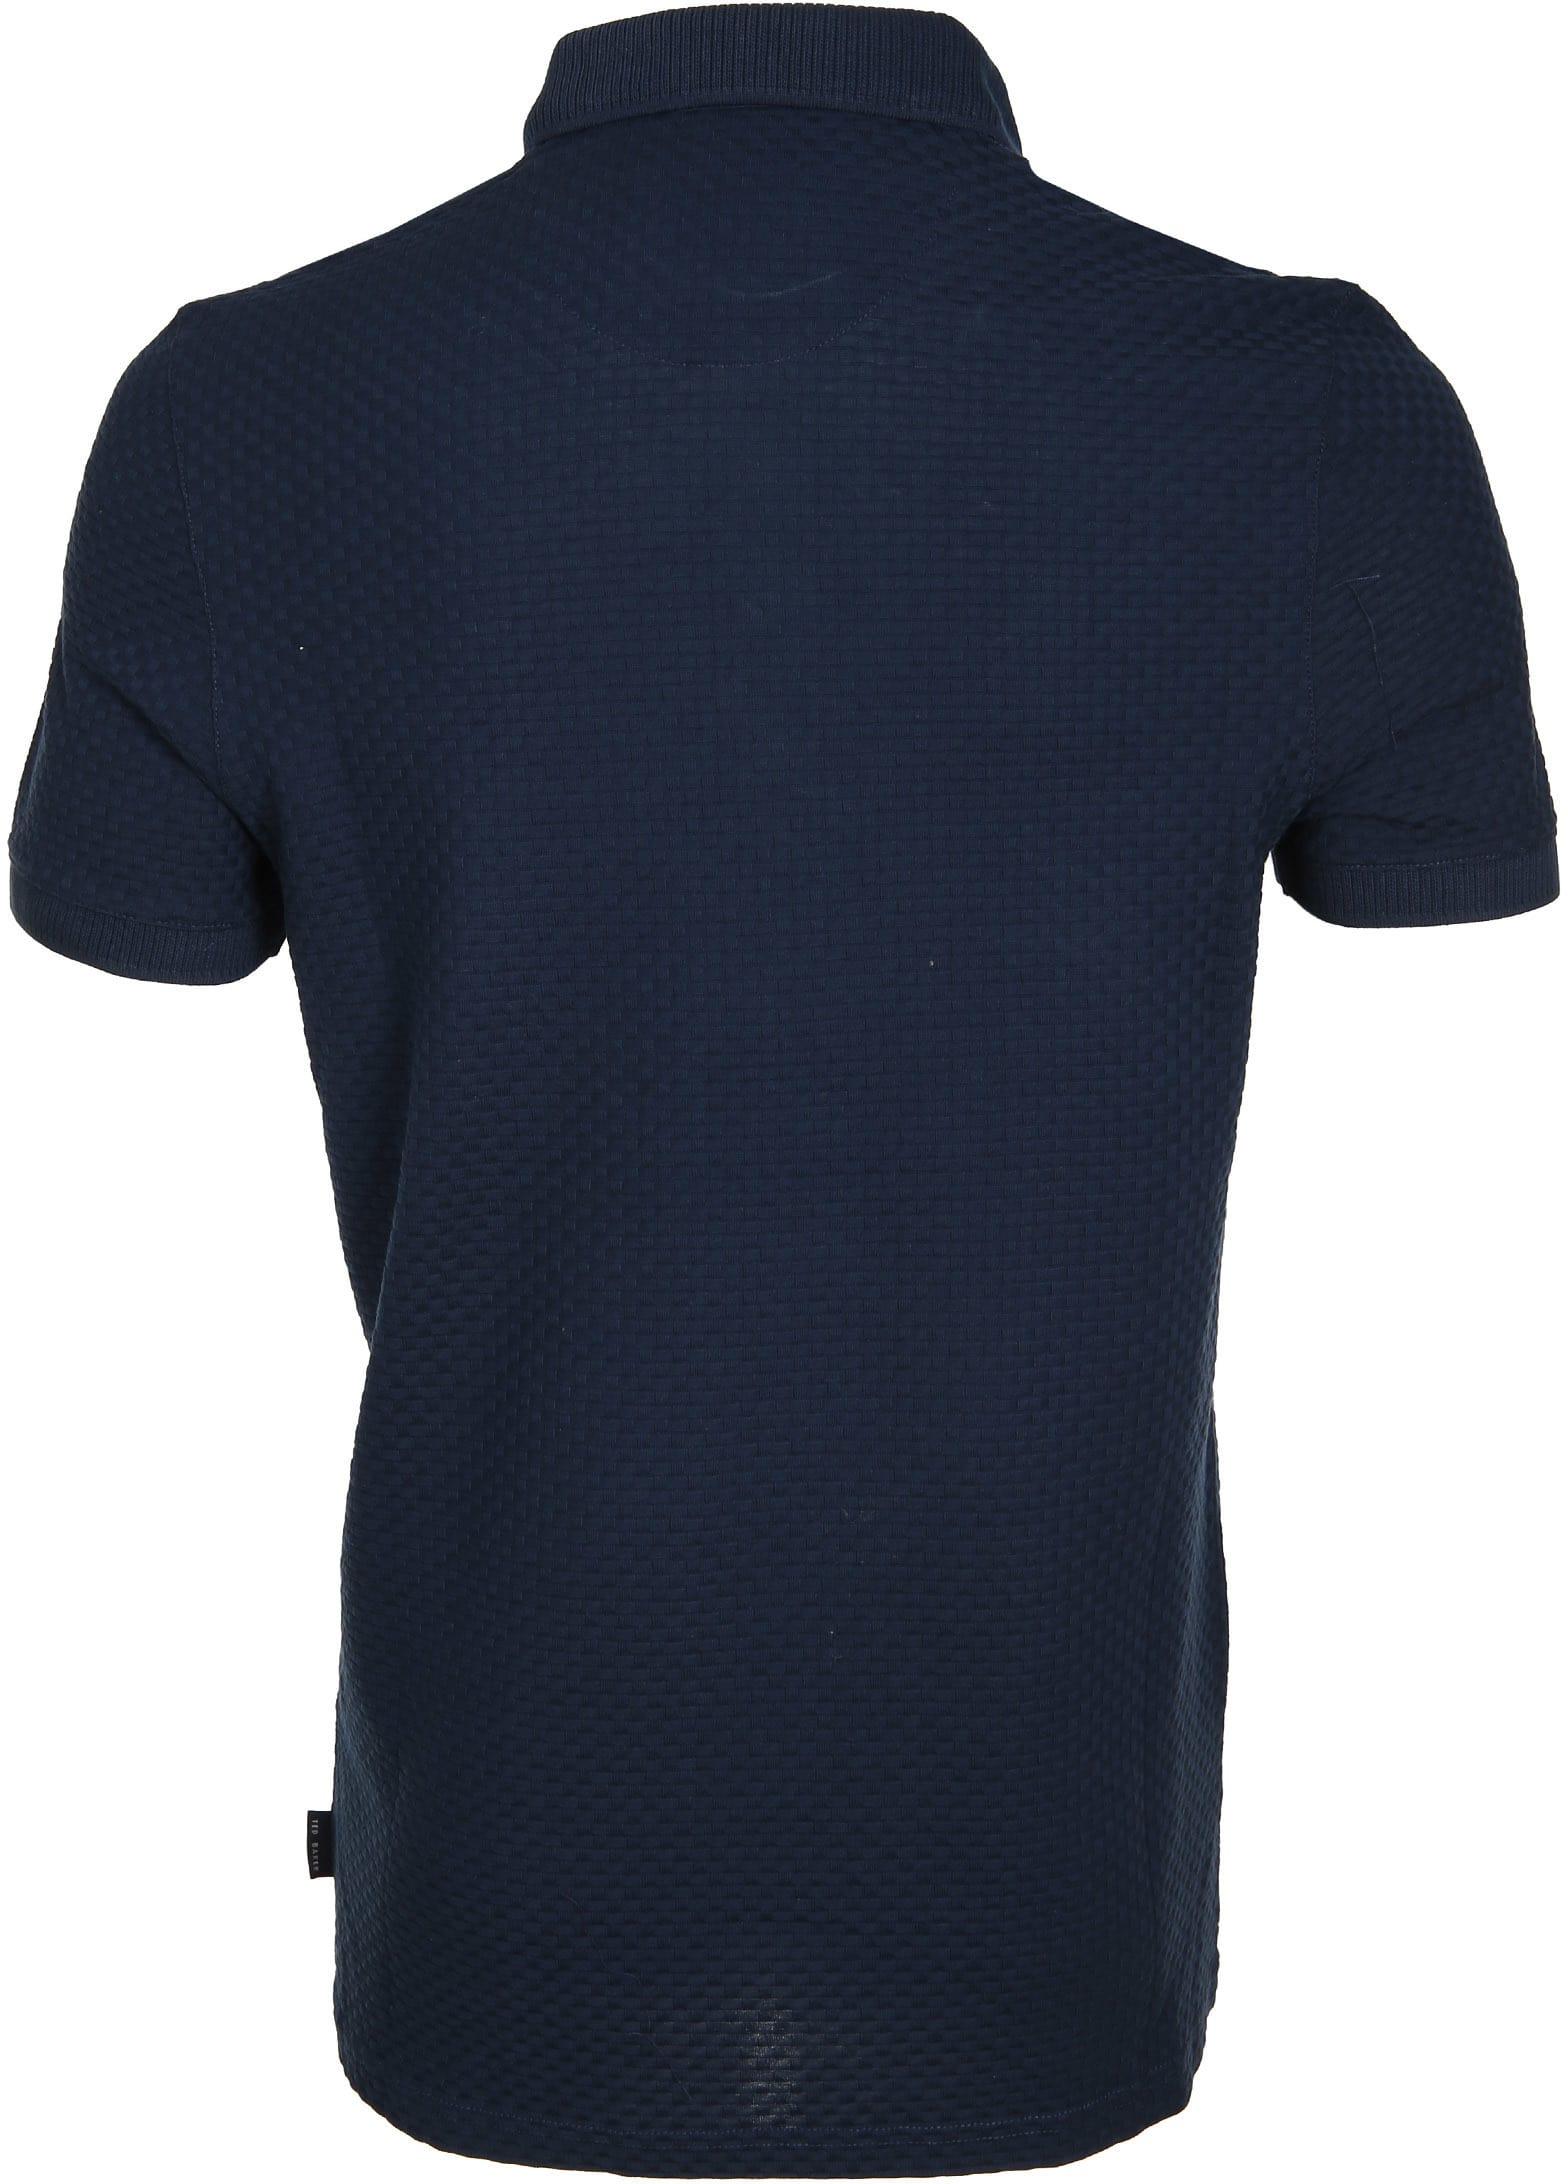 Ted Baker Poloshirt Knit Navy foto 2